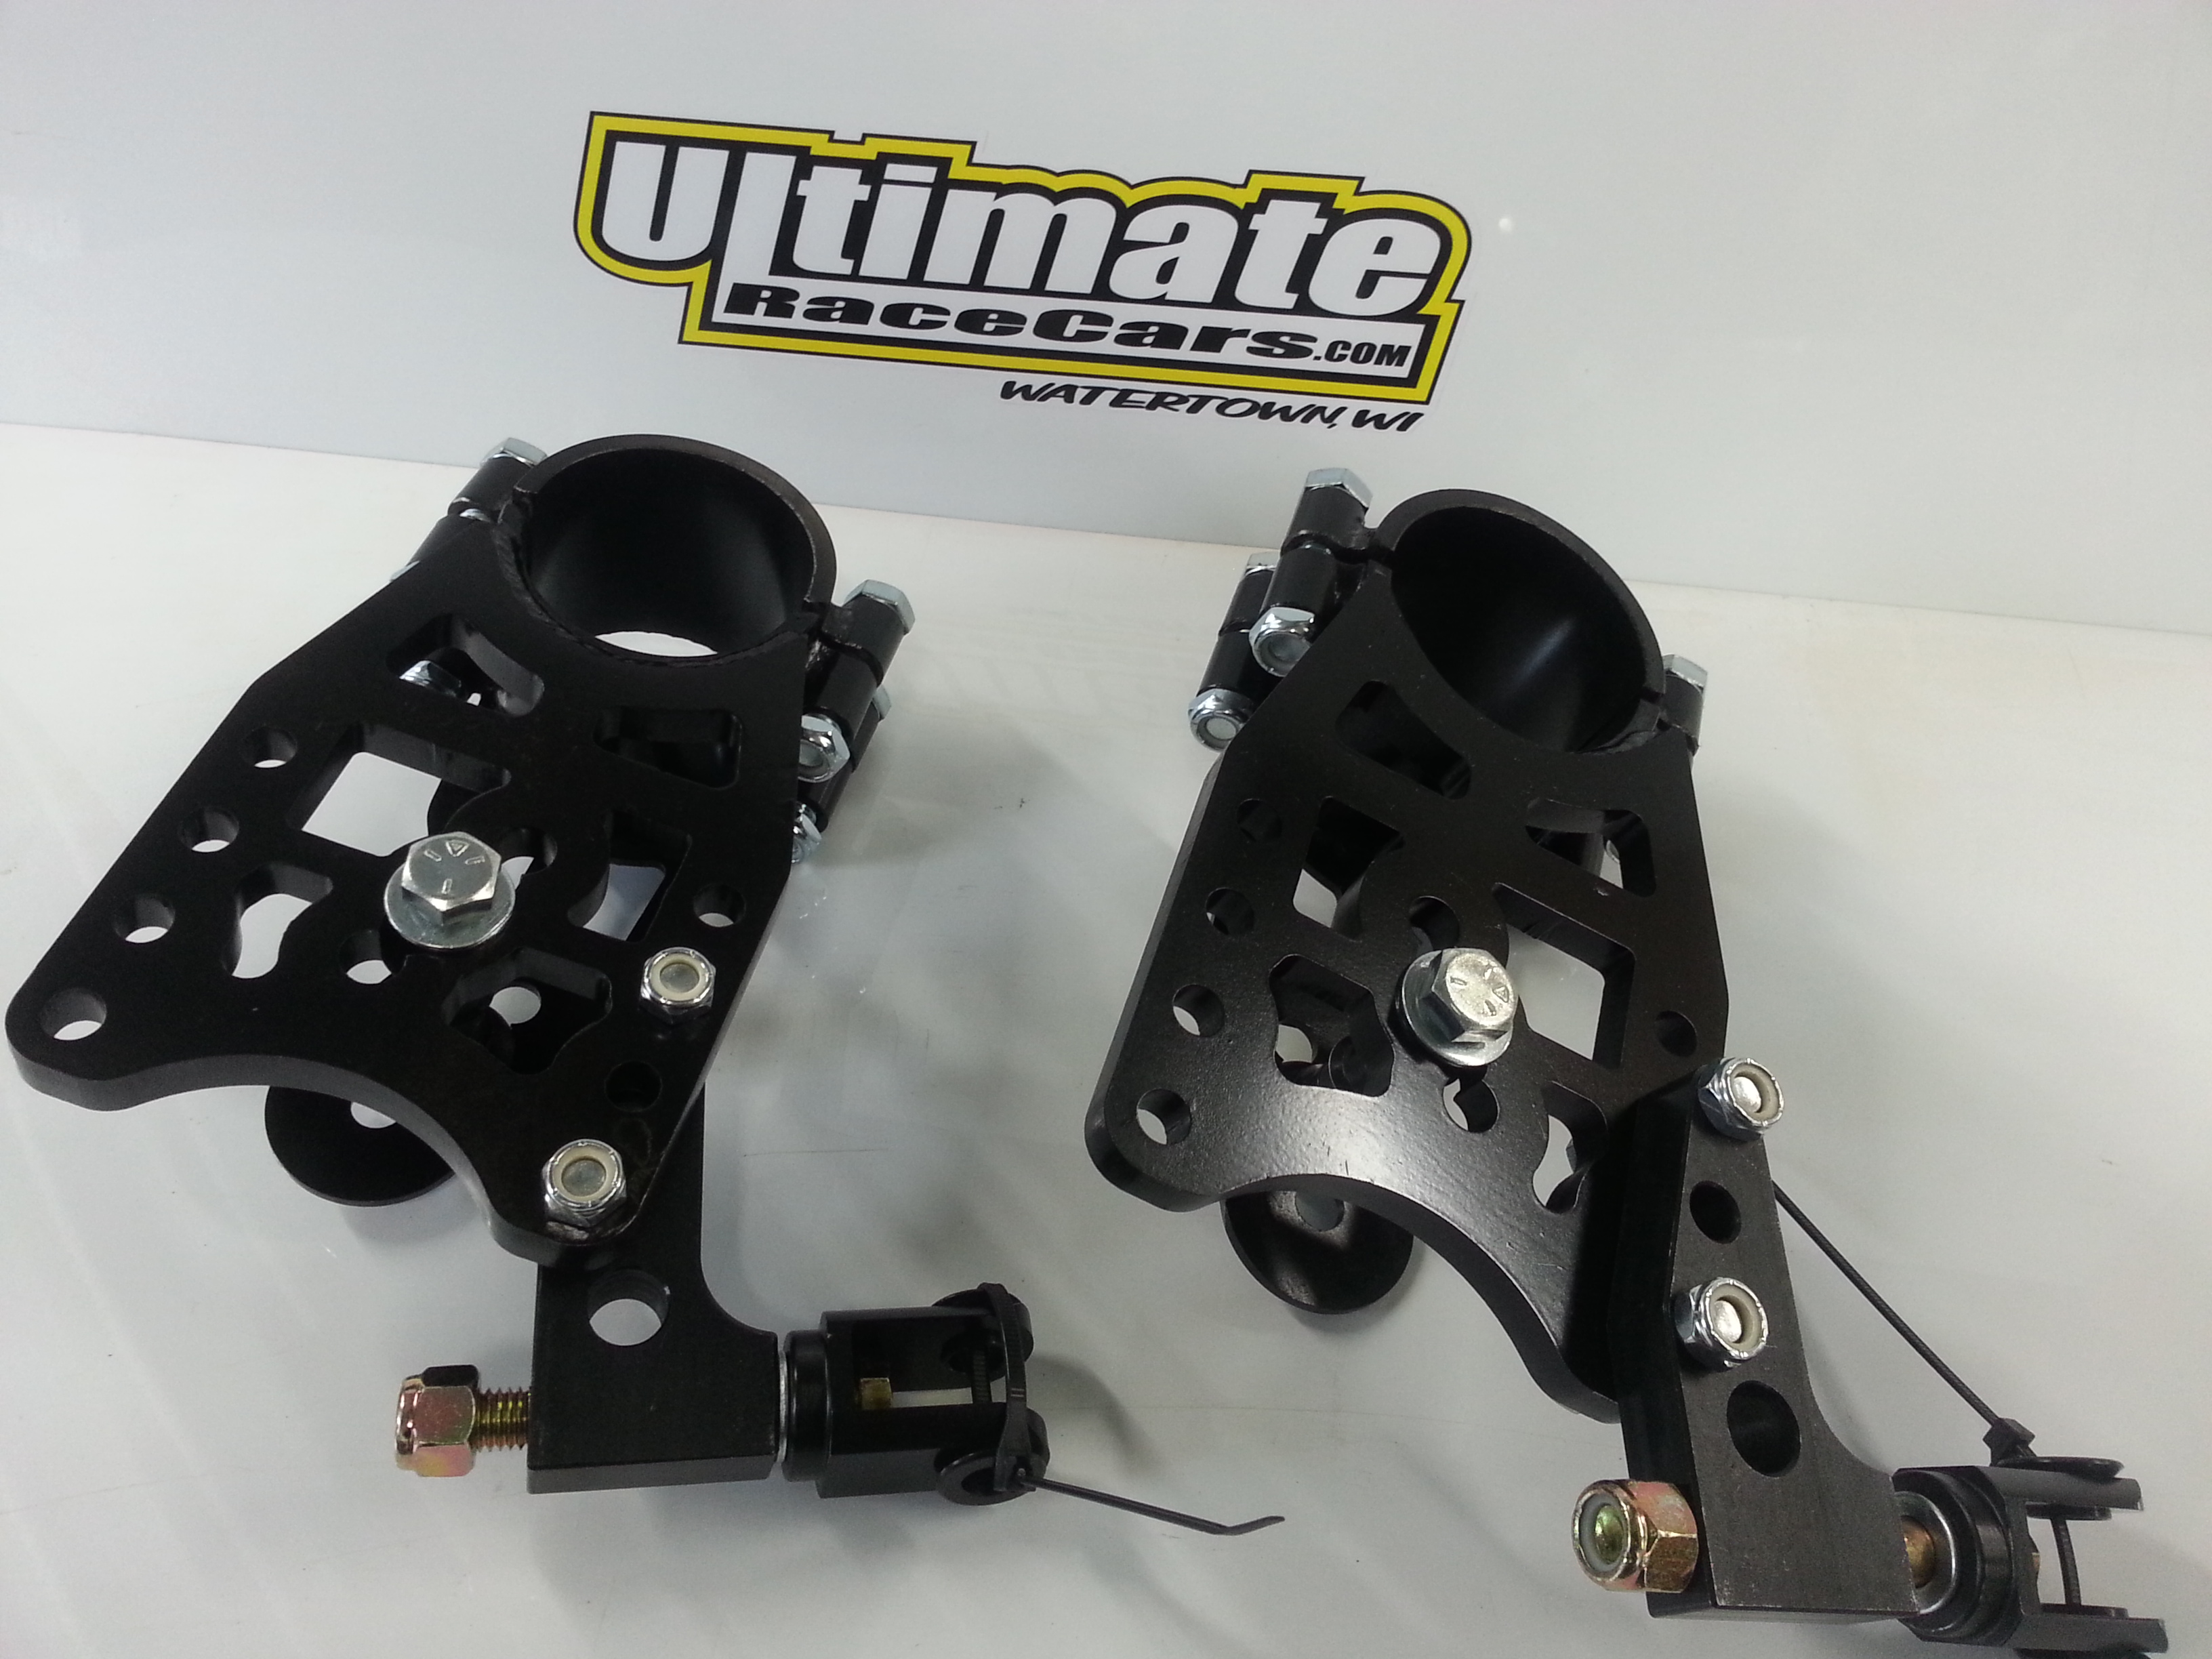 Ultimate Racecars Llc News